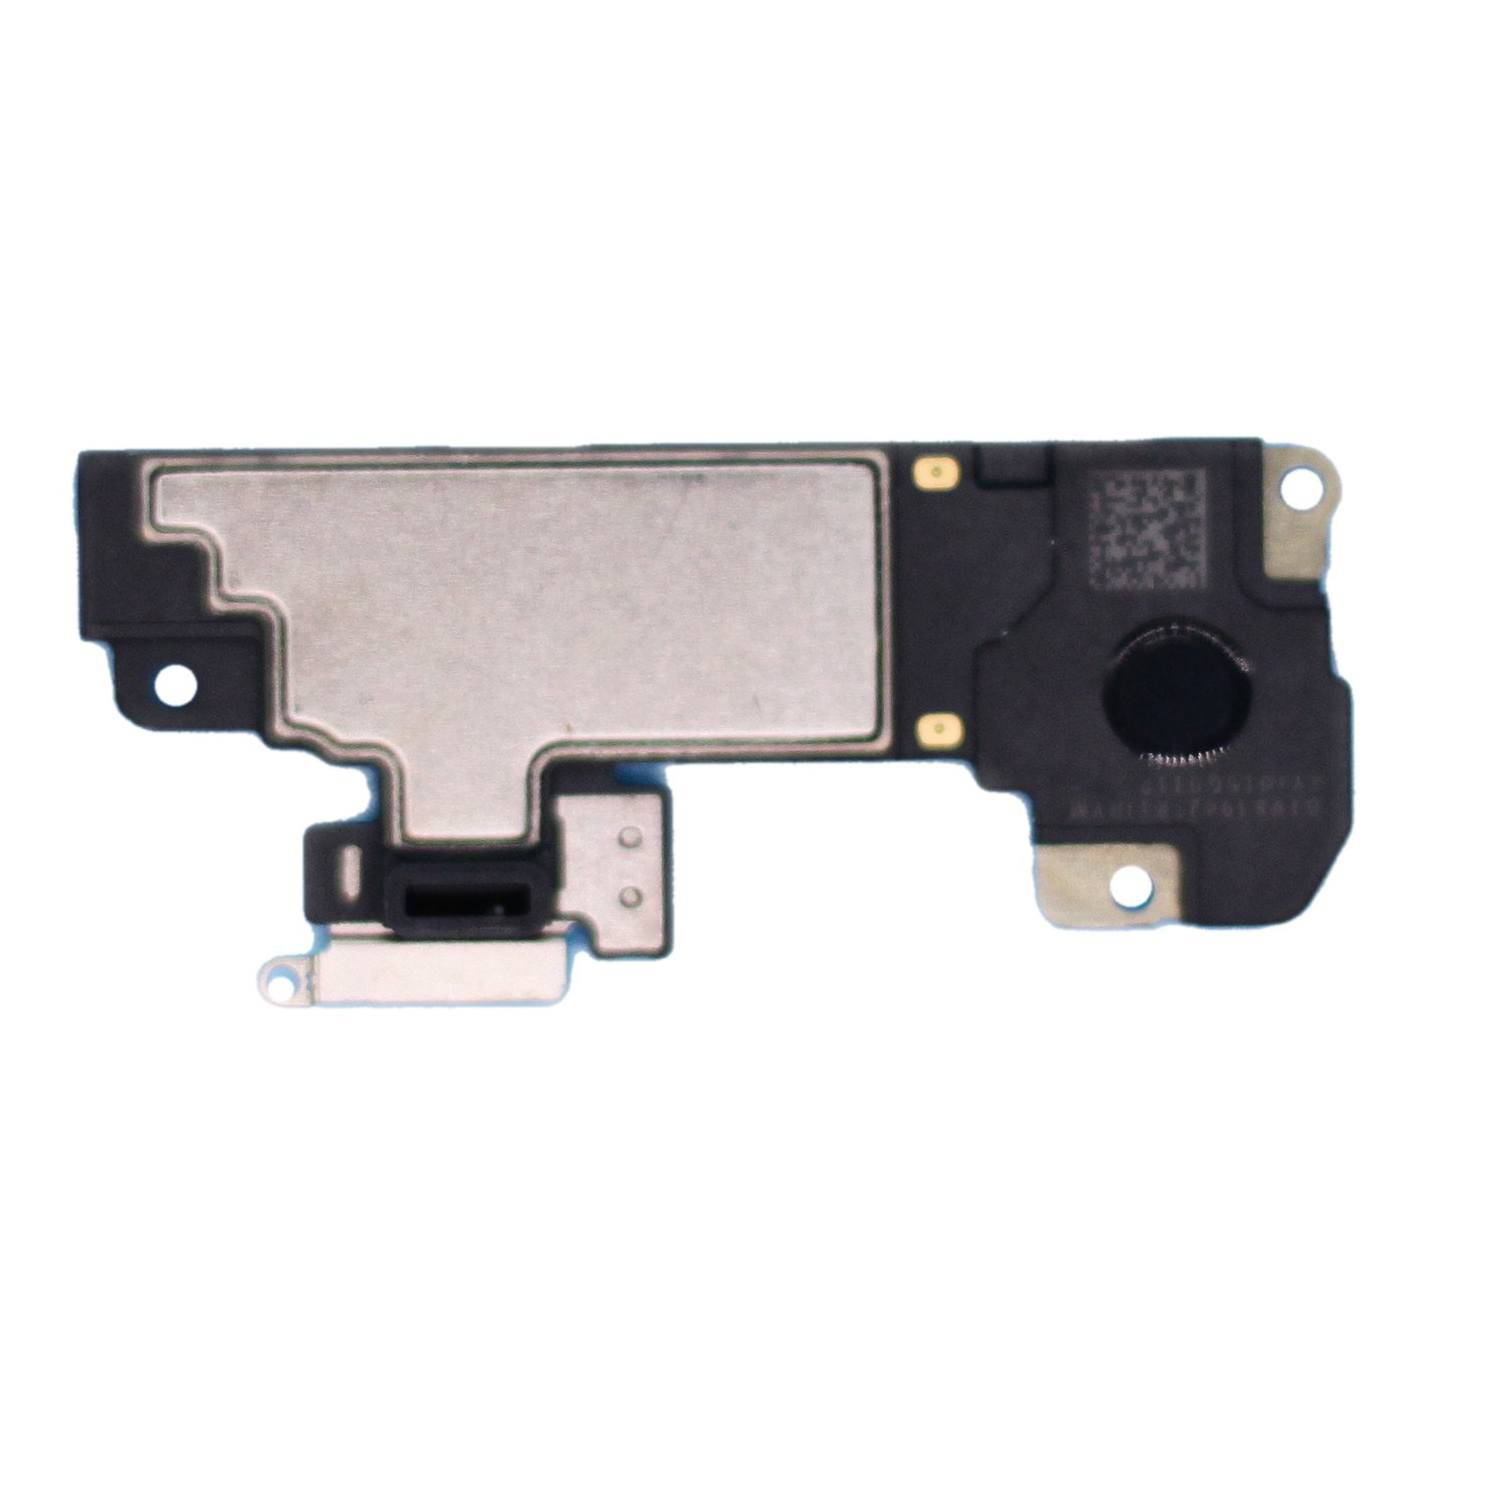 Ear Piece Speaker replacement for iPhone XR A1984 A2106 A2108 Pic1